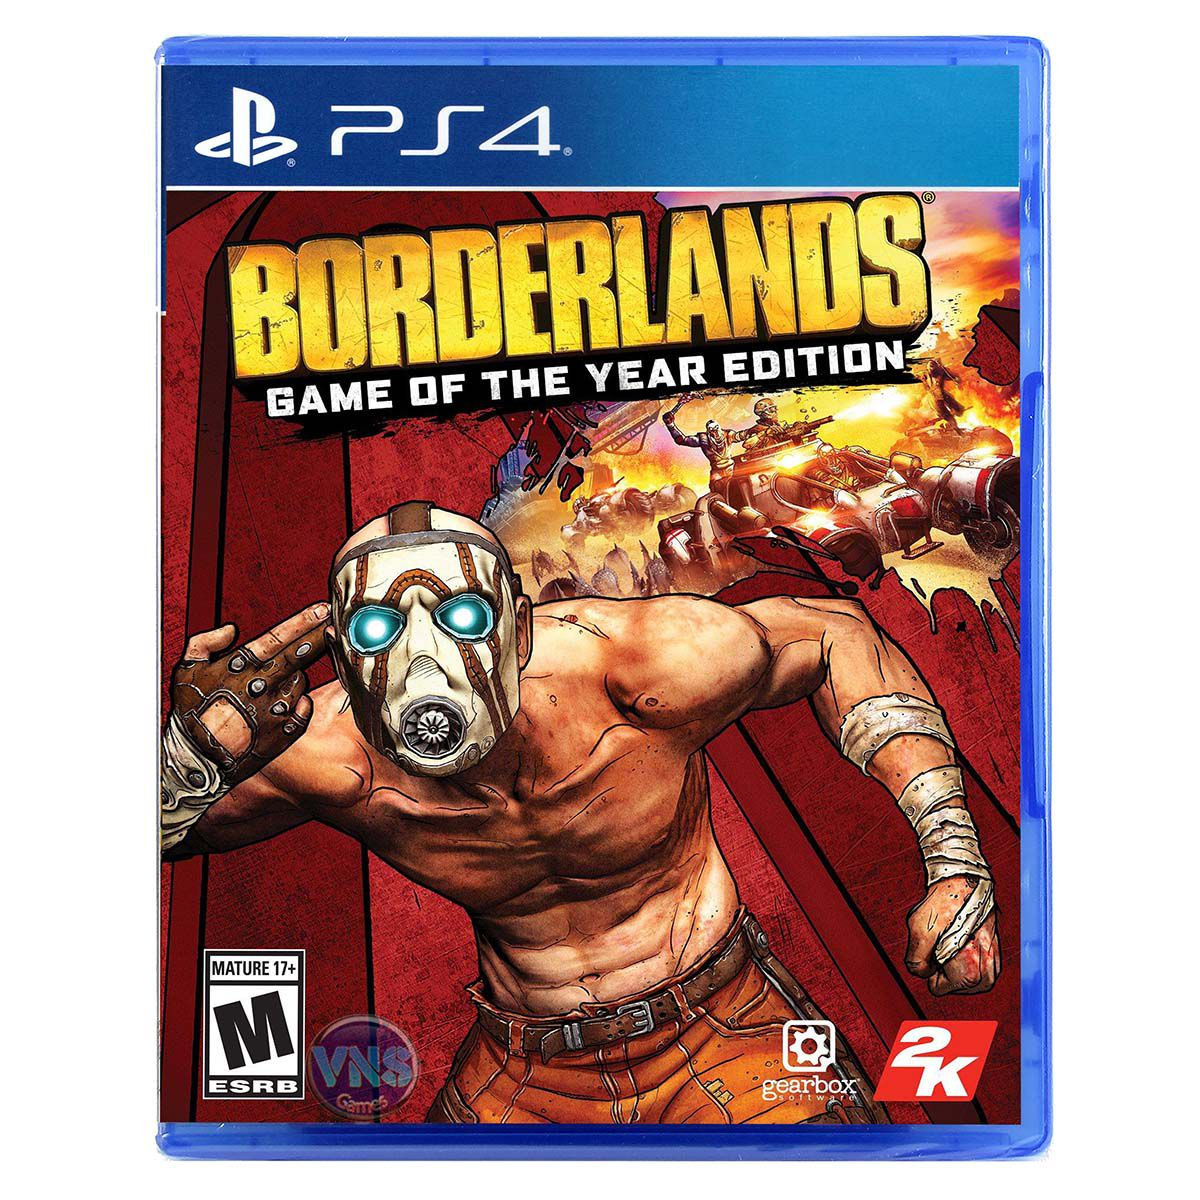 Borderlands Game of the Year Edition - PS4